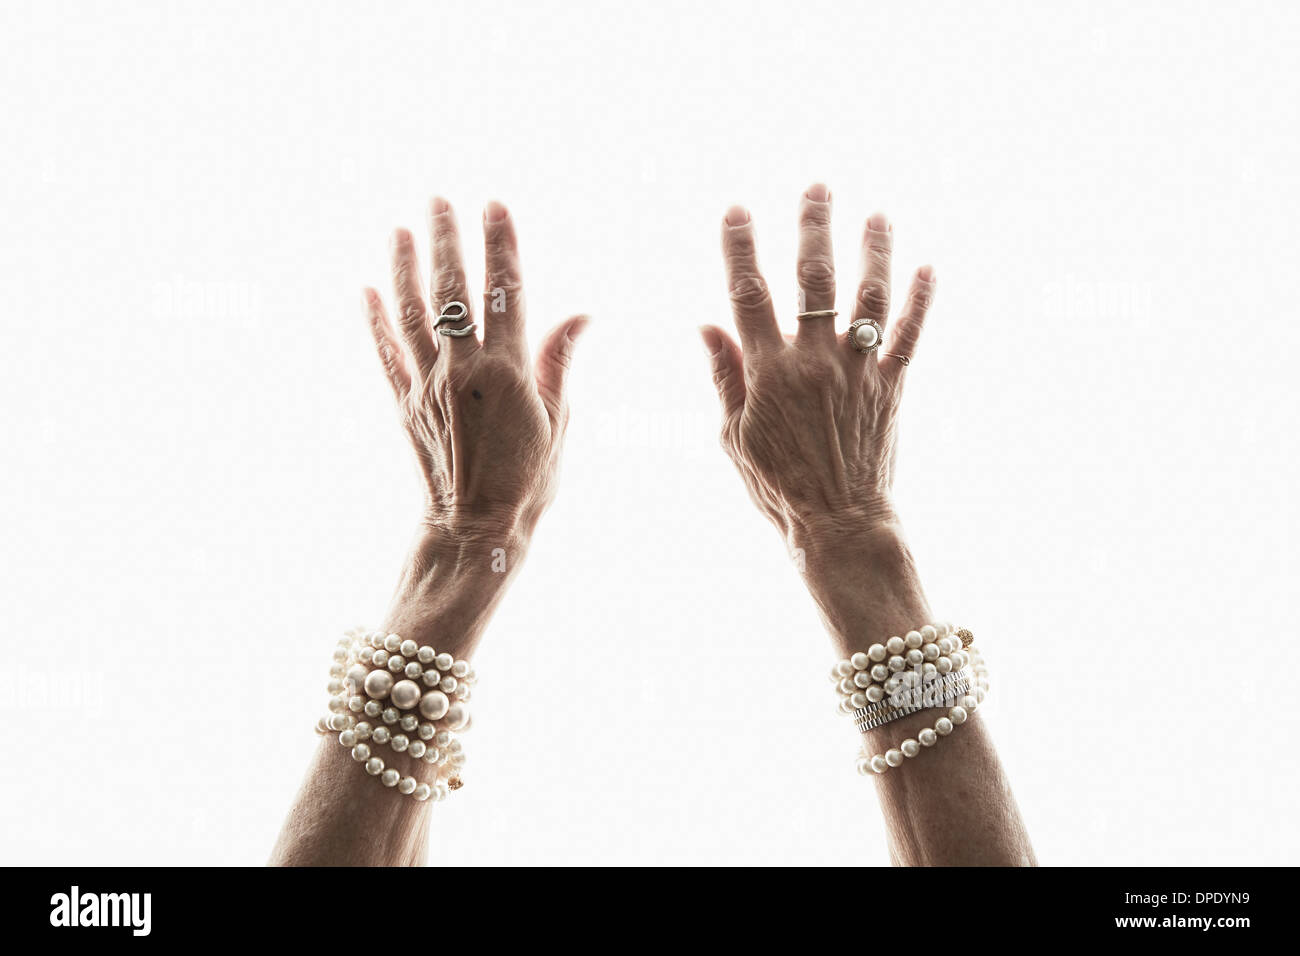 Studio shot of mature woman's reaching hands - Stock Image